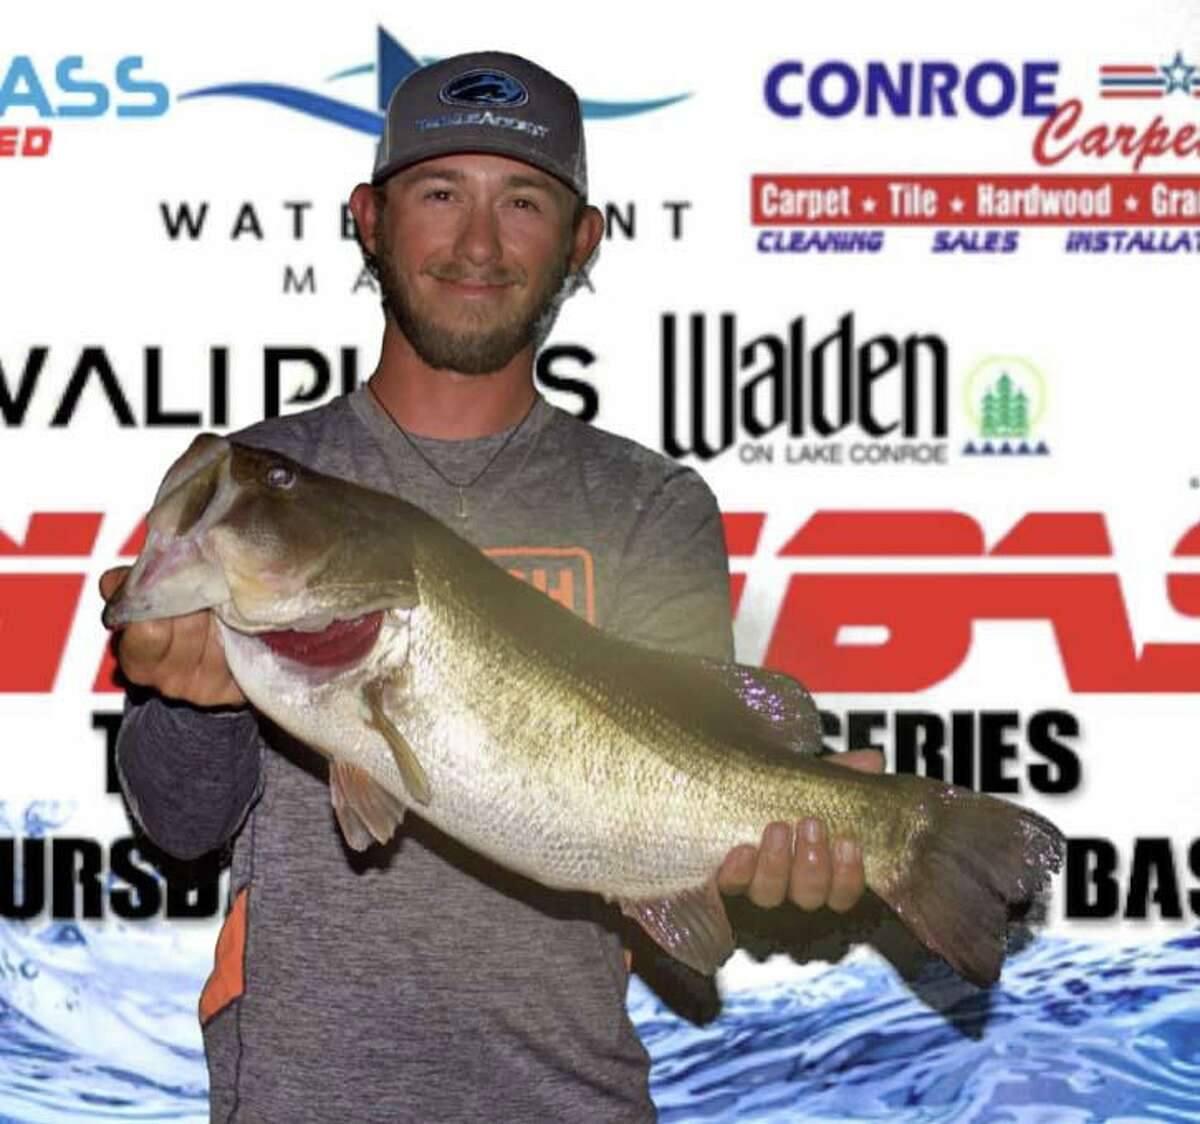 Wesley Baxley won the CONROEBASS Thursday Big Bass Tournament with a bass weighing 8.42 pounds.